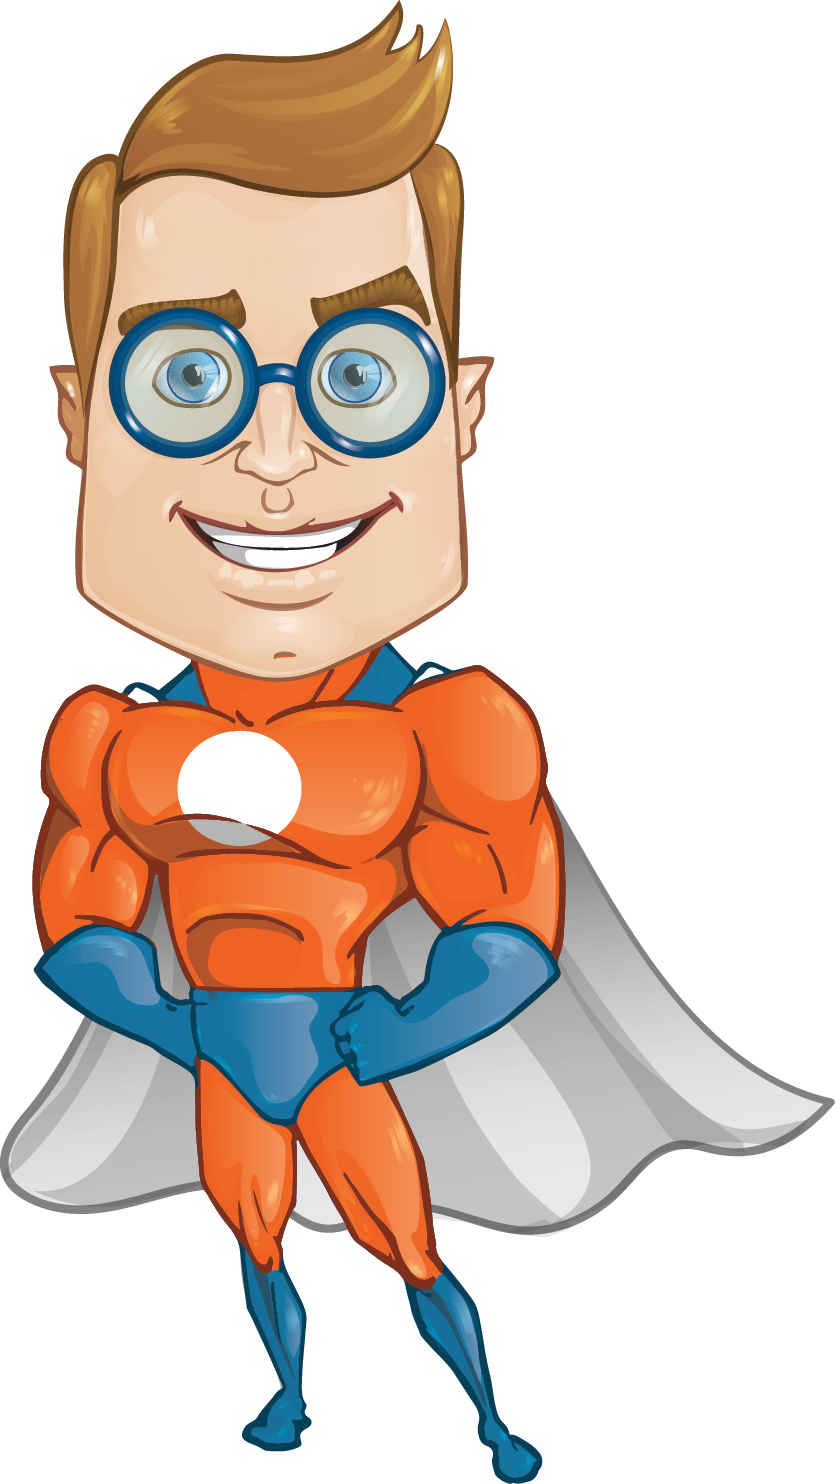 3d superhero toon clipart png royalty free stock Superhero Flying Clipart | Free download best Superhero Flying ... png royalty free stock